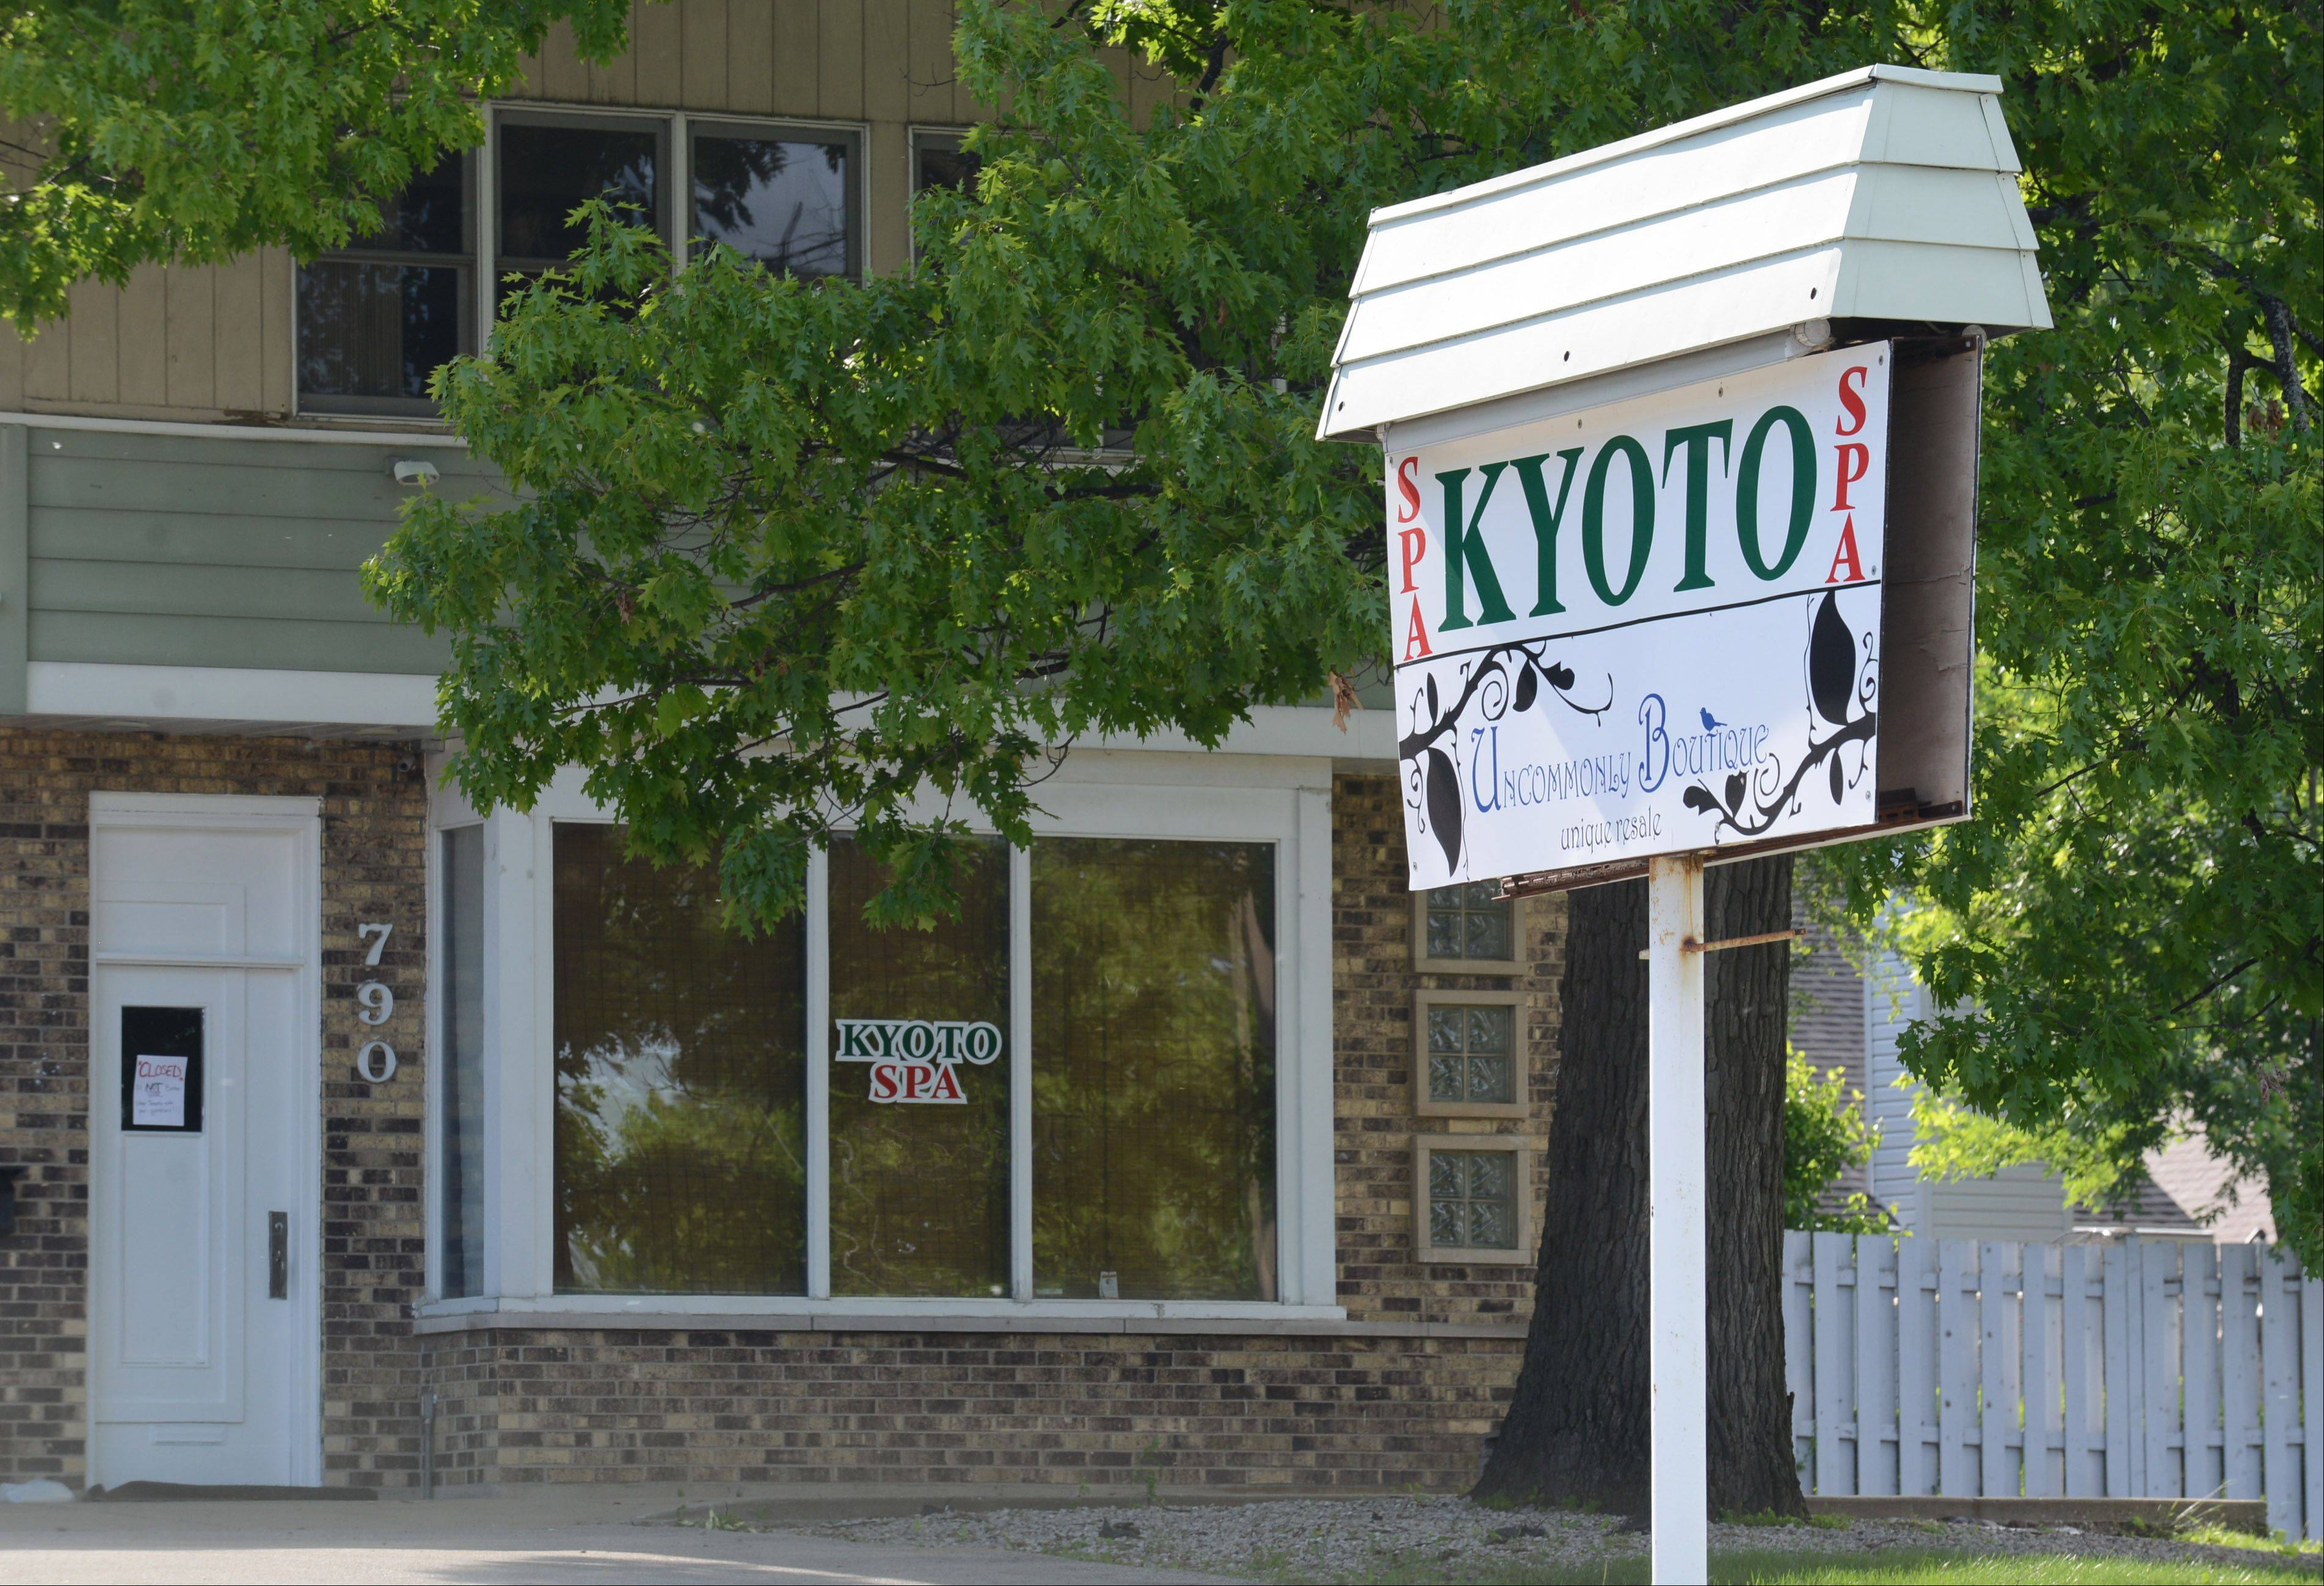 Grayslake has revoked the business license of Kyoto Spa and Massage on Route 83, where police say two women were charged with prostitution.